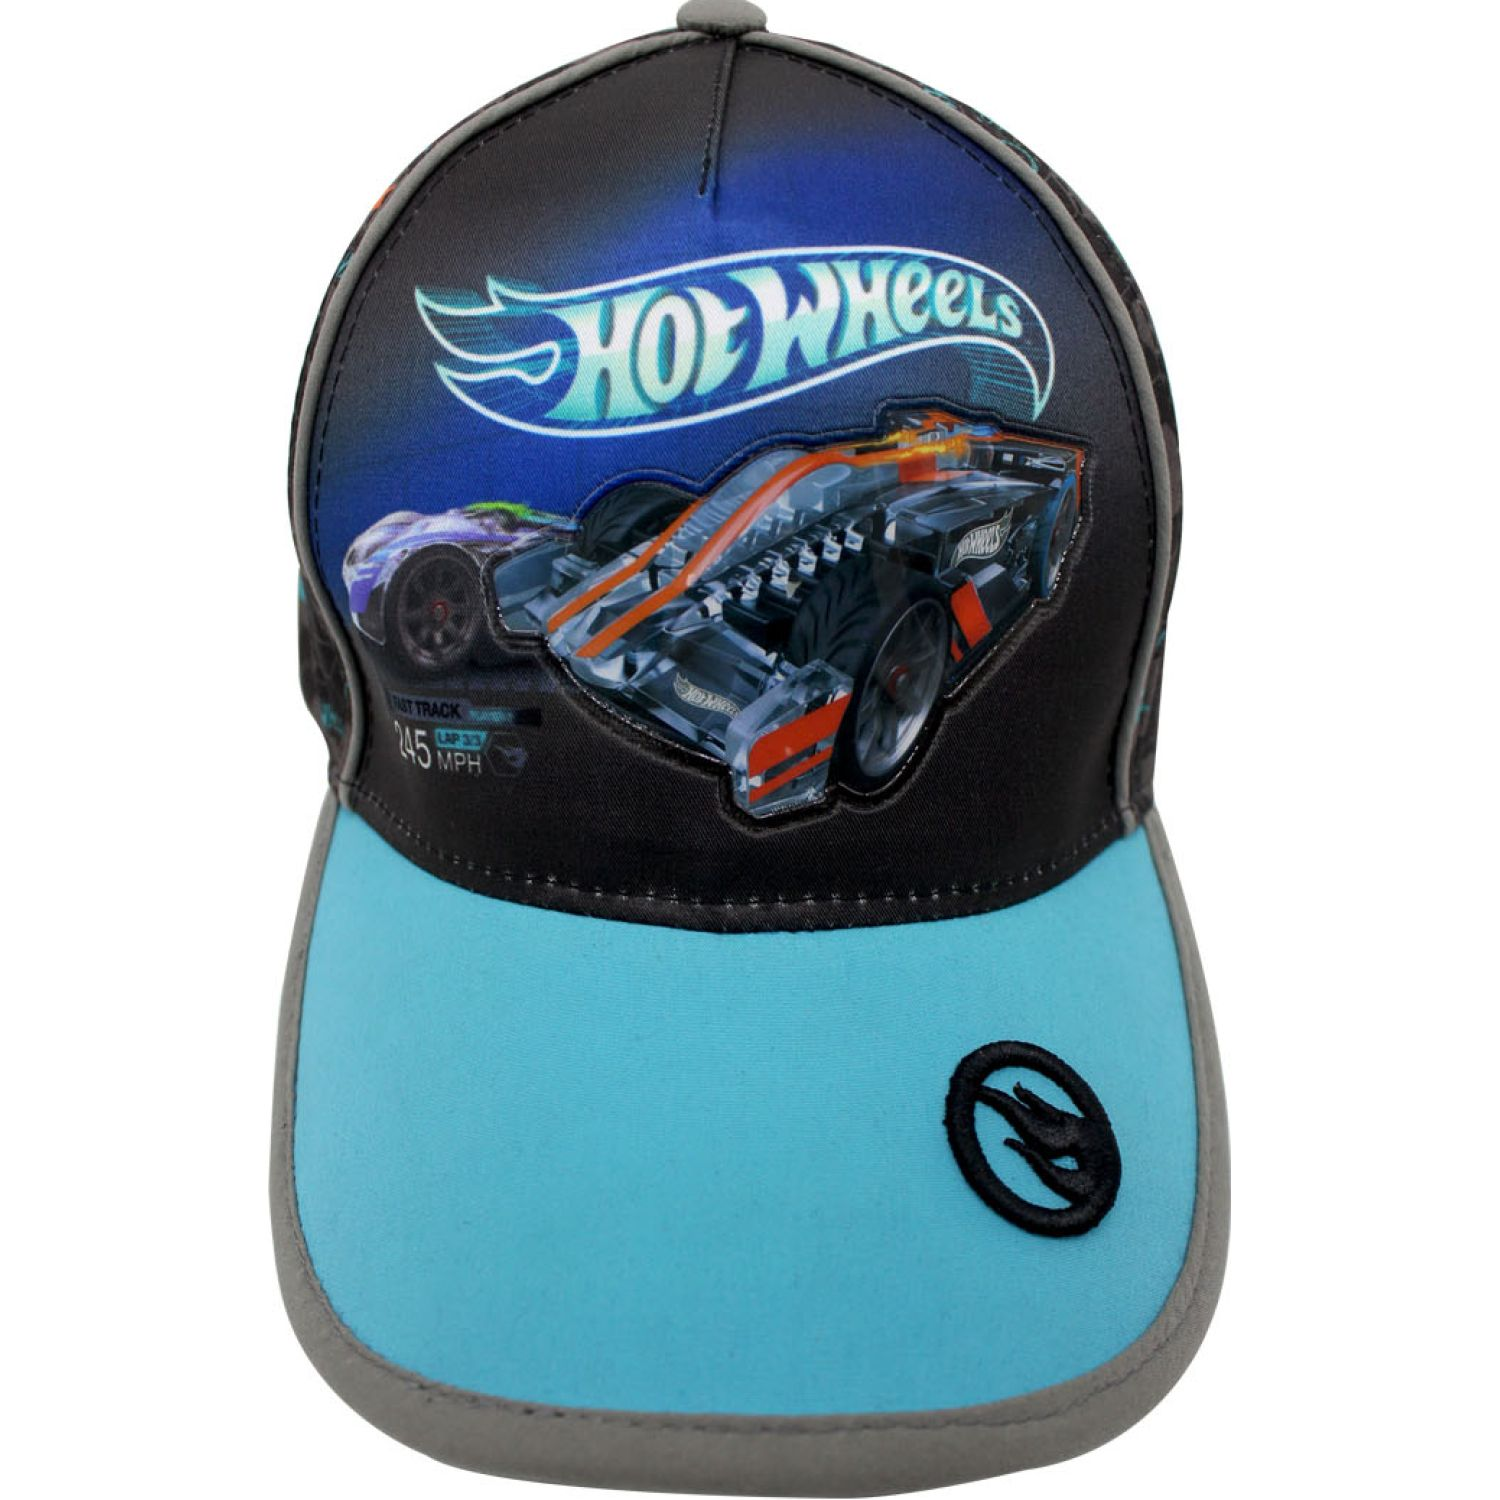 Hot Wheels gorro hot wheels Negro / celeste Sombreros y Gorros